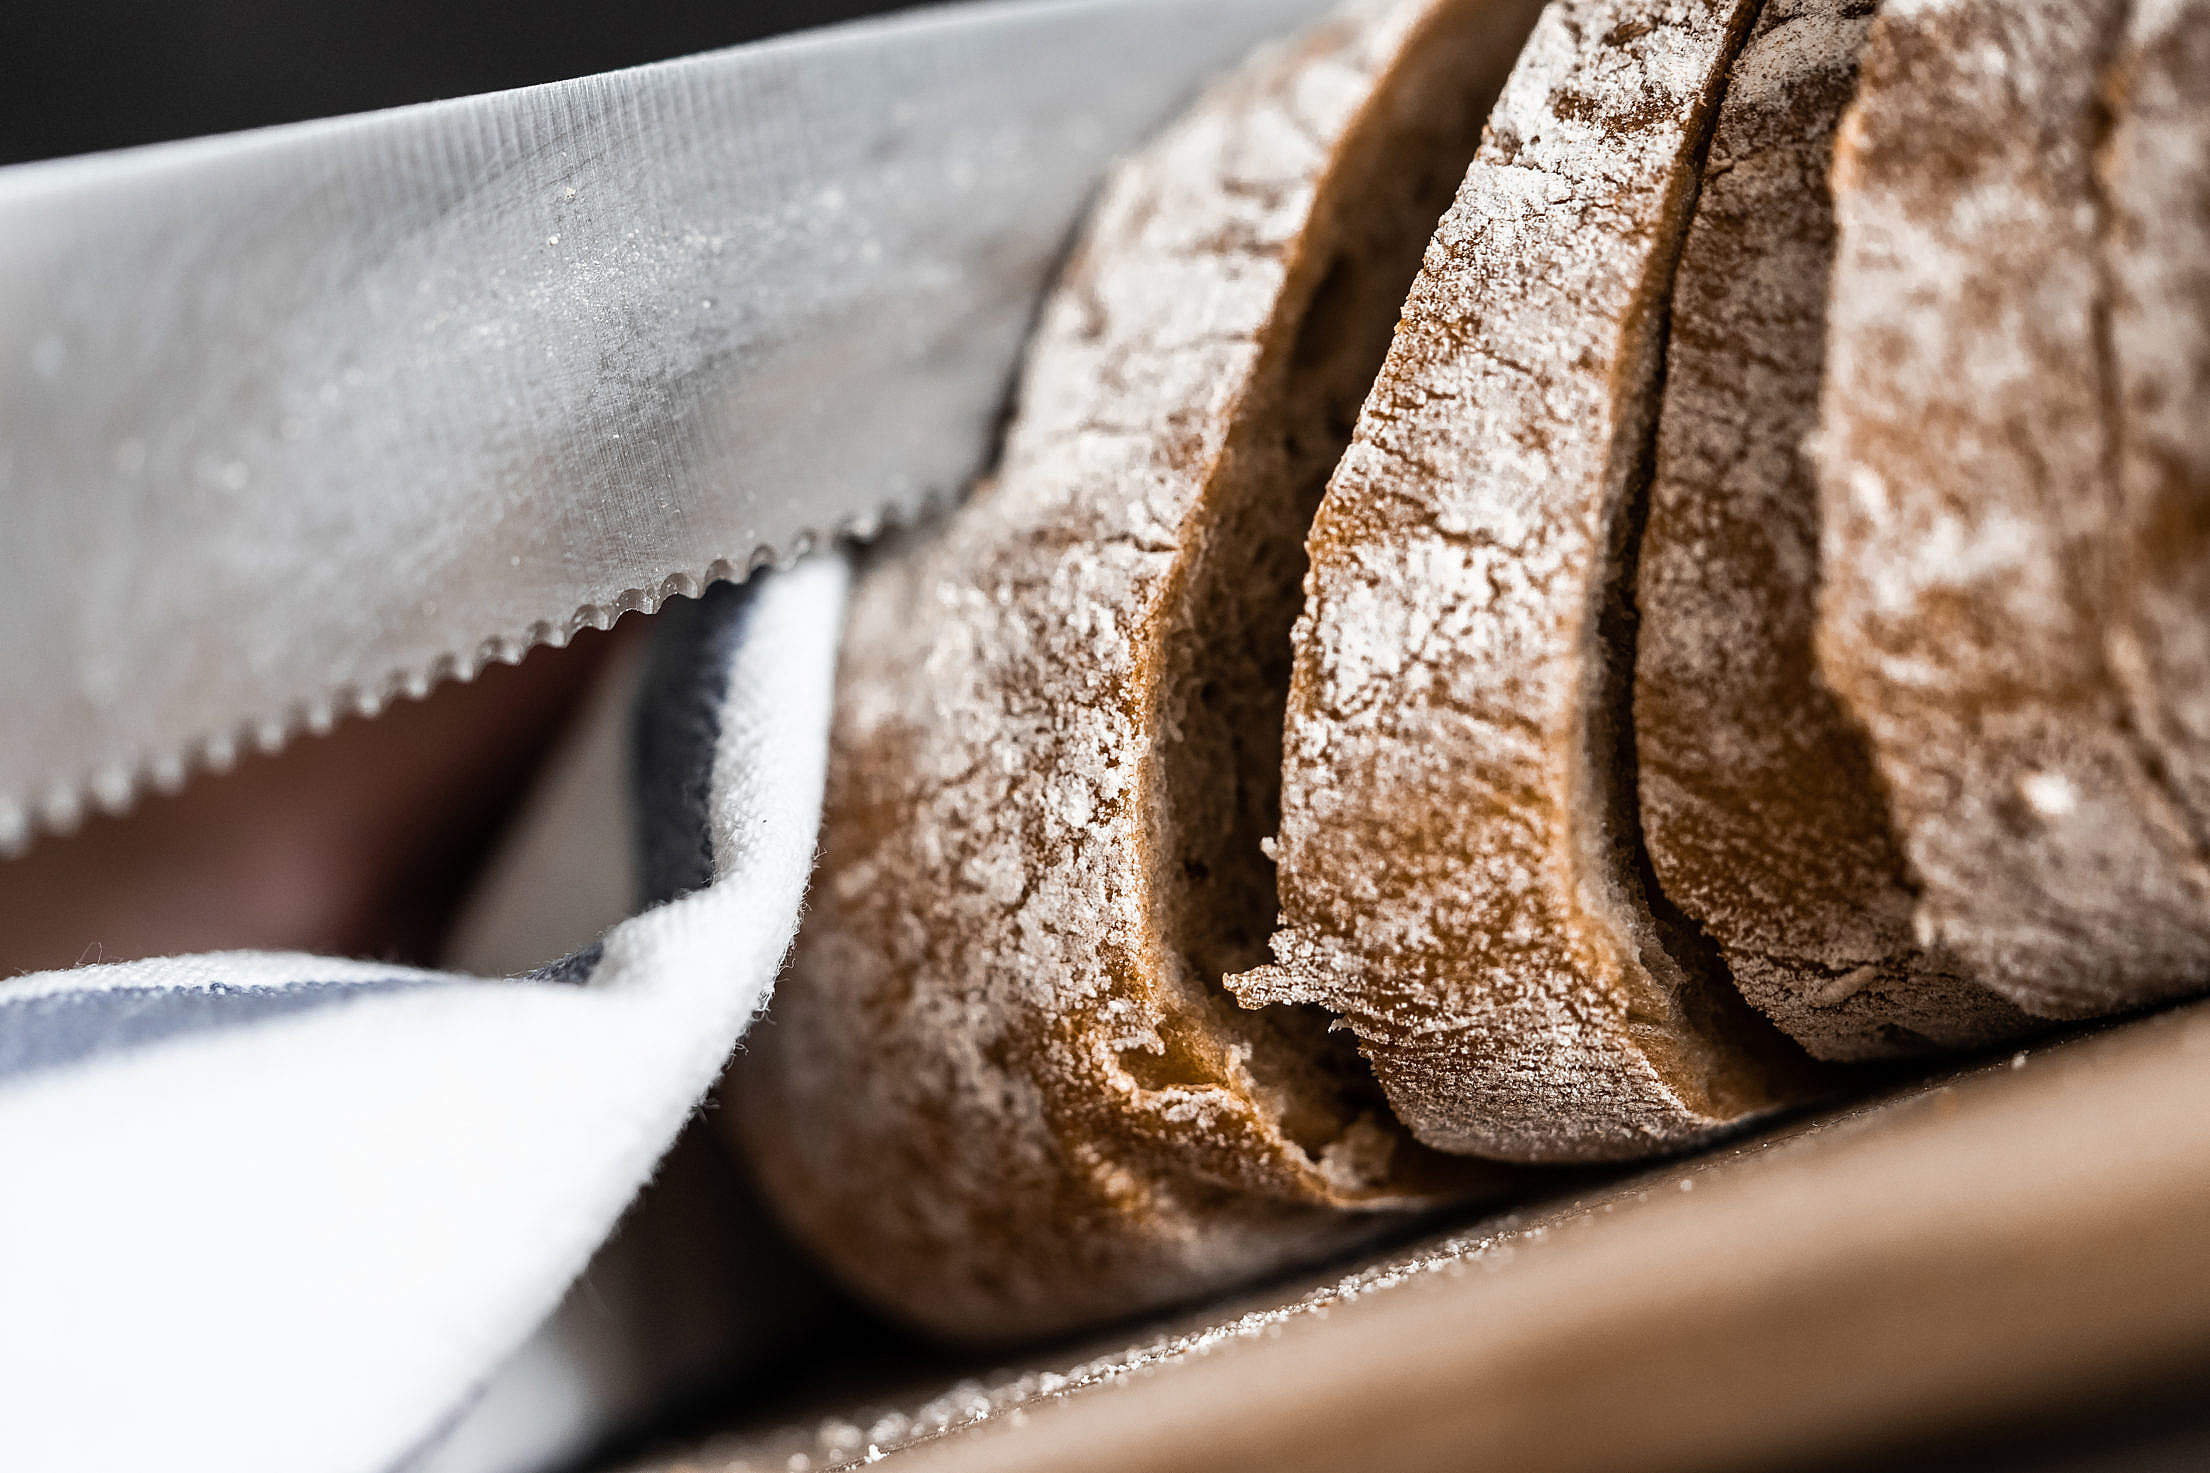 Slicing Bread Knife Close Up Free Stock Photo